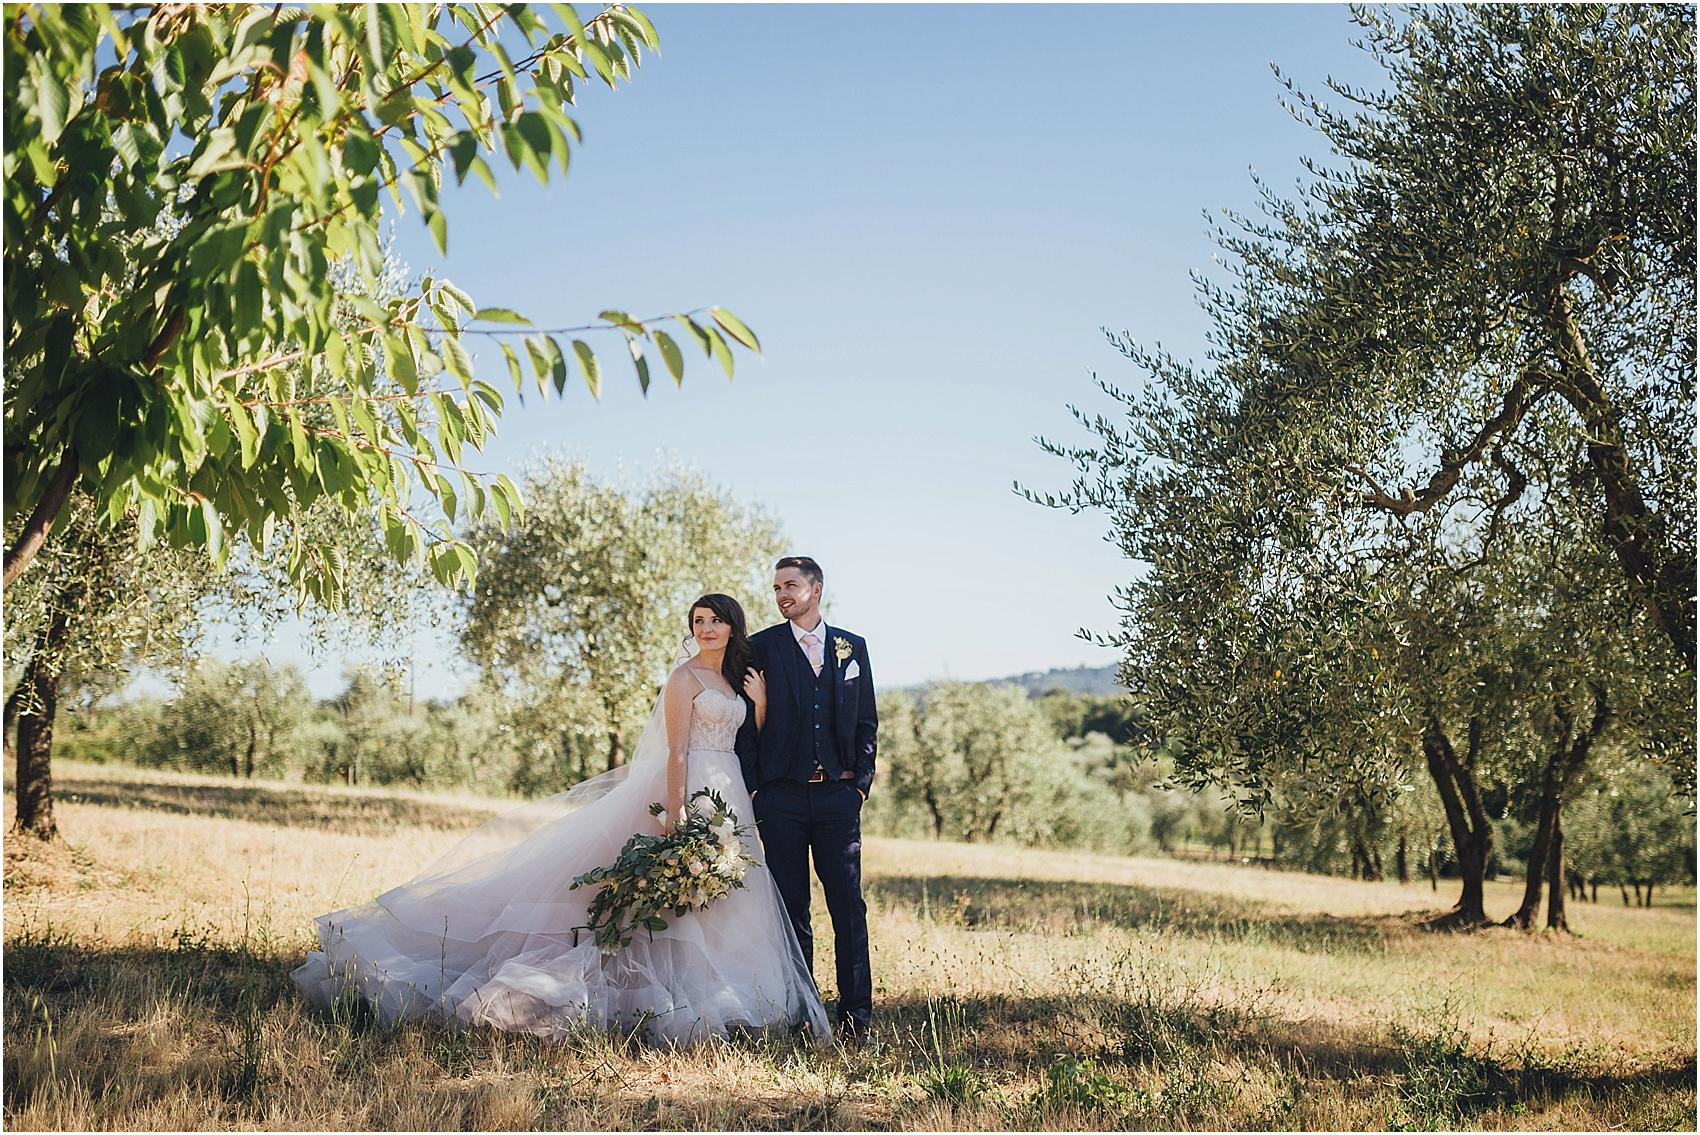 Wedding photographer Tuscany - villa Catignano